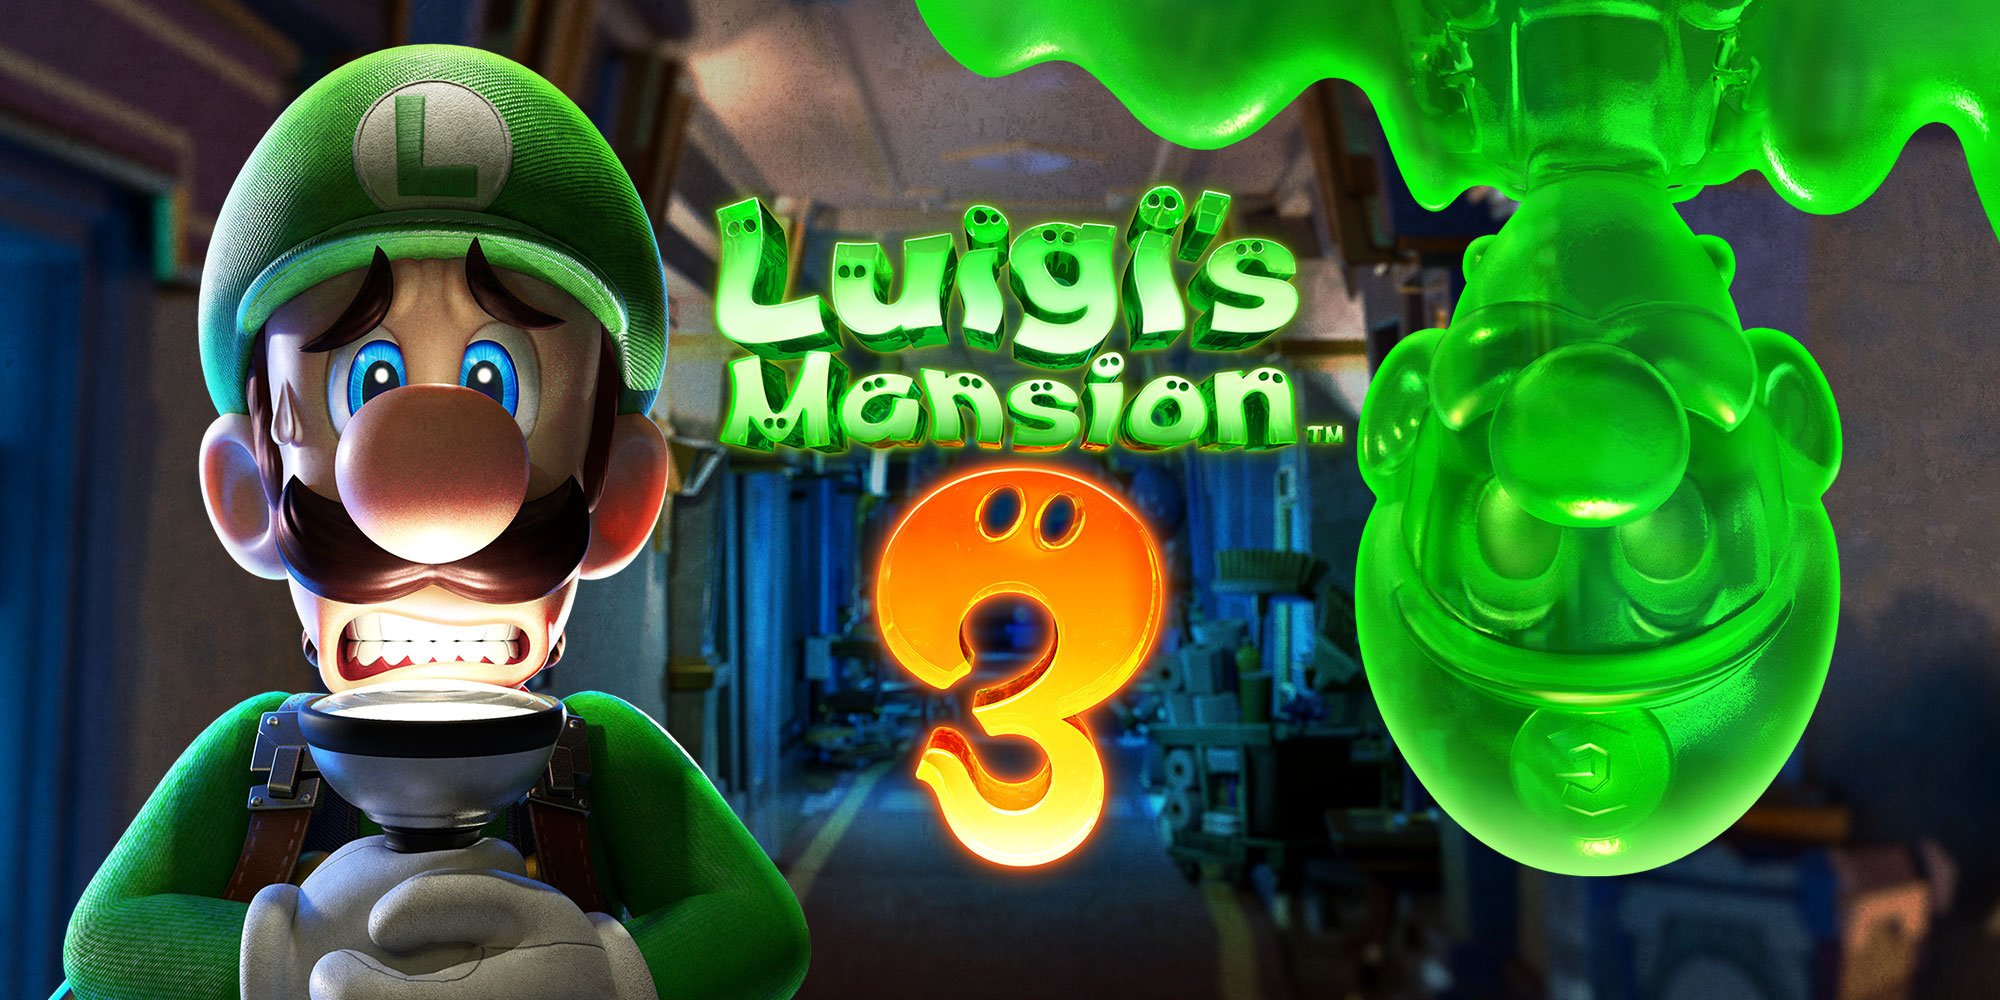 'Luigi's Mansion 3' stars a jelly doppelganger named Gooigi